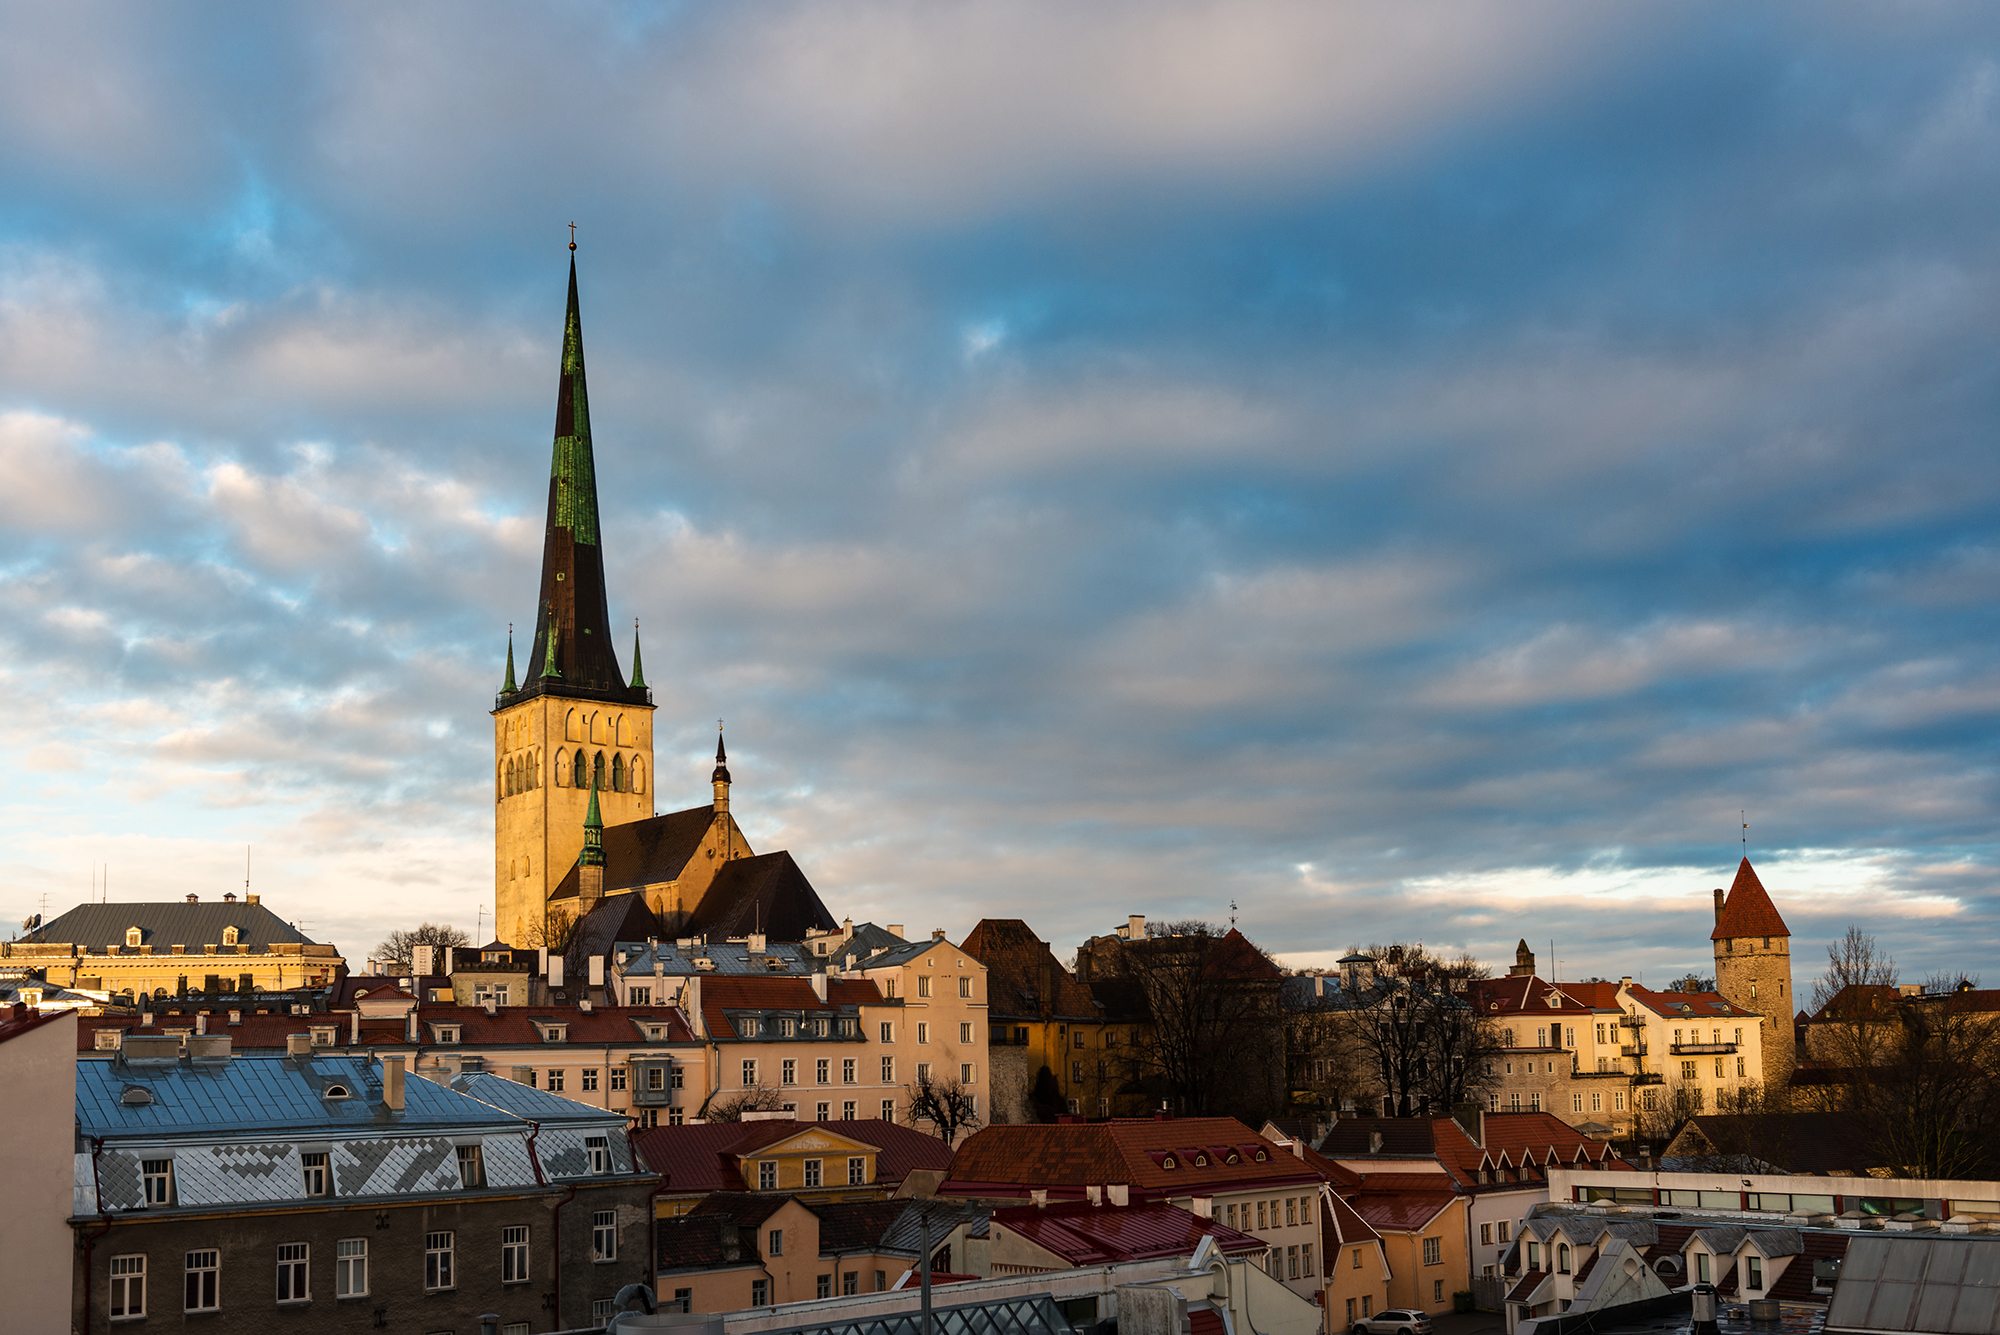 Dawn illuminating Tallinn's old town